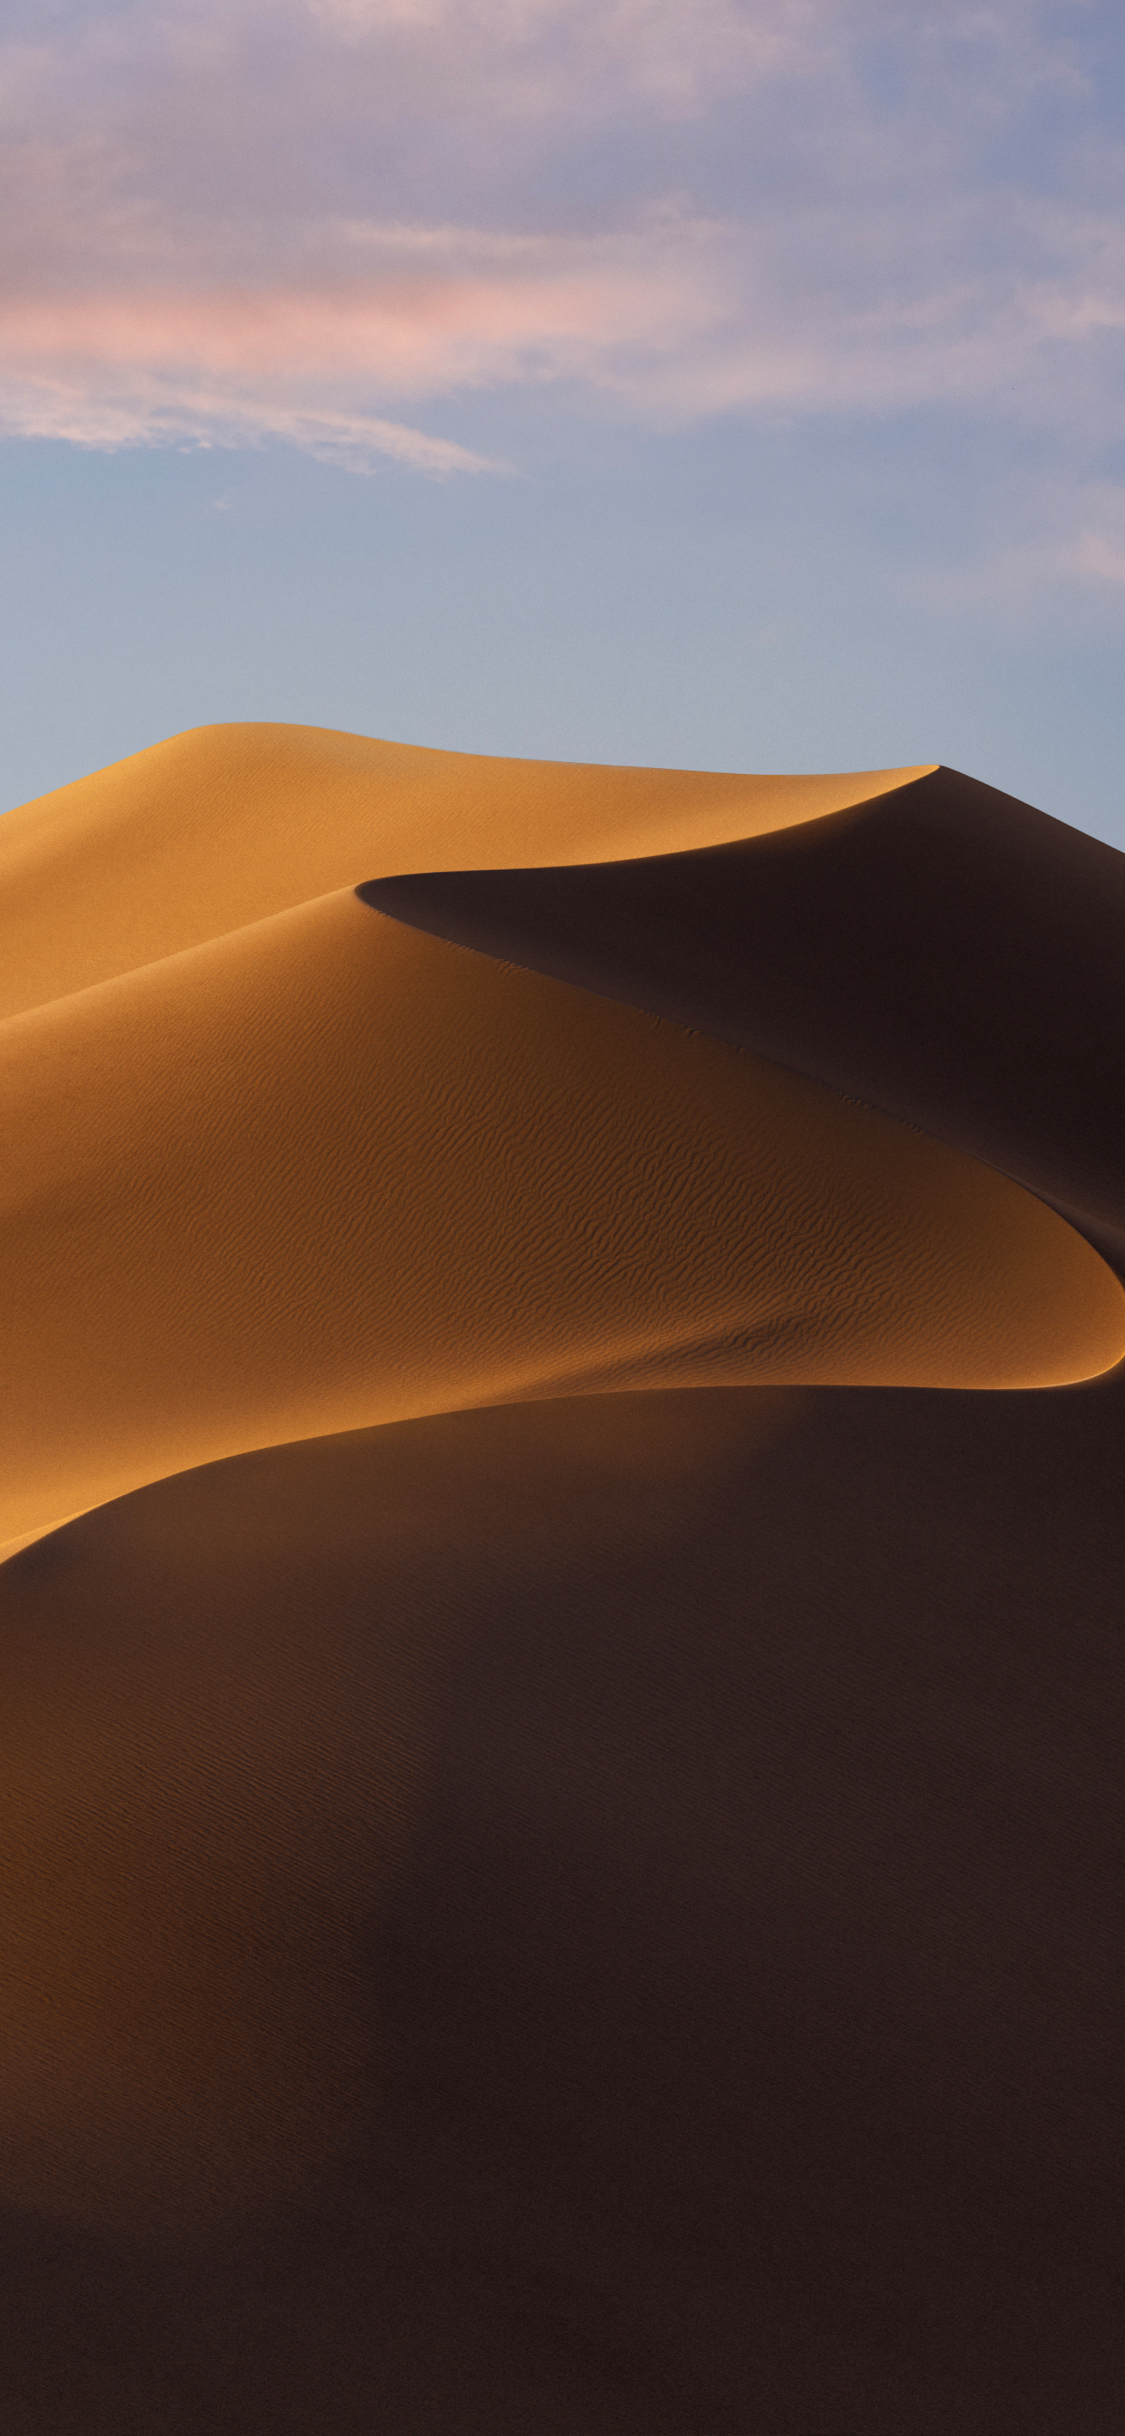 macOS mojave day iphone wallpaper macOS Mojave